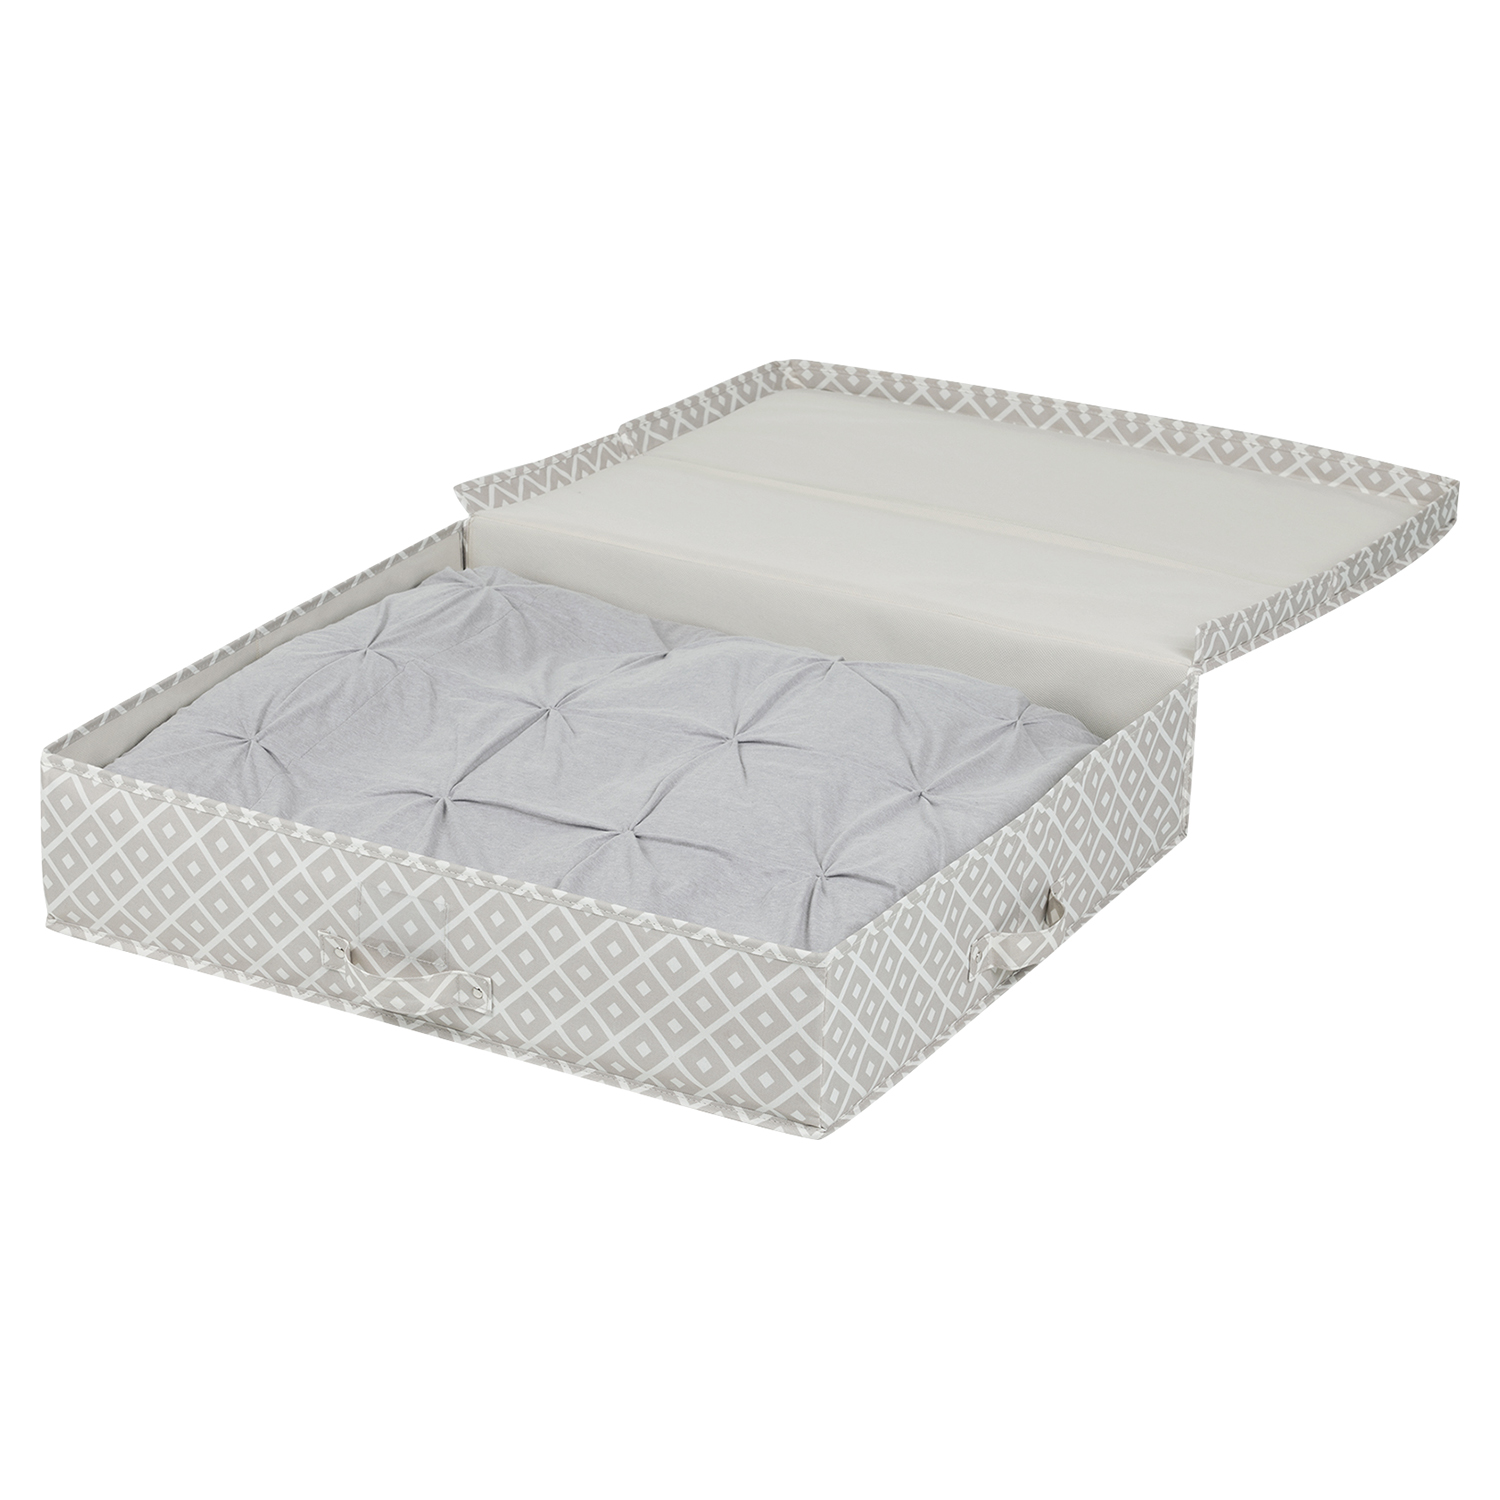 Storit Pattern Canvas Underbed Storage Box - Beige - SS-100041